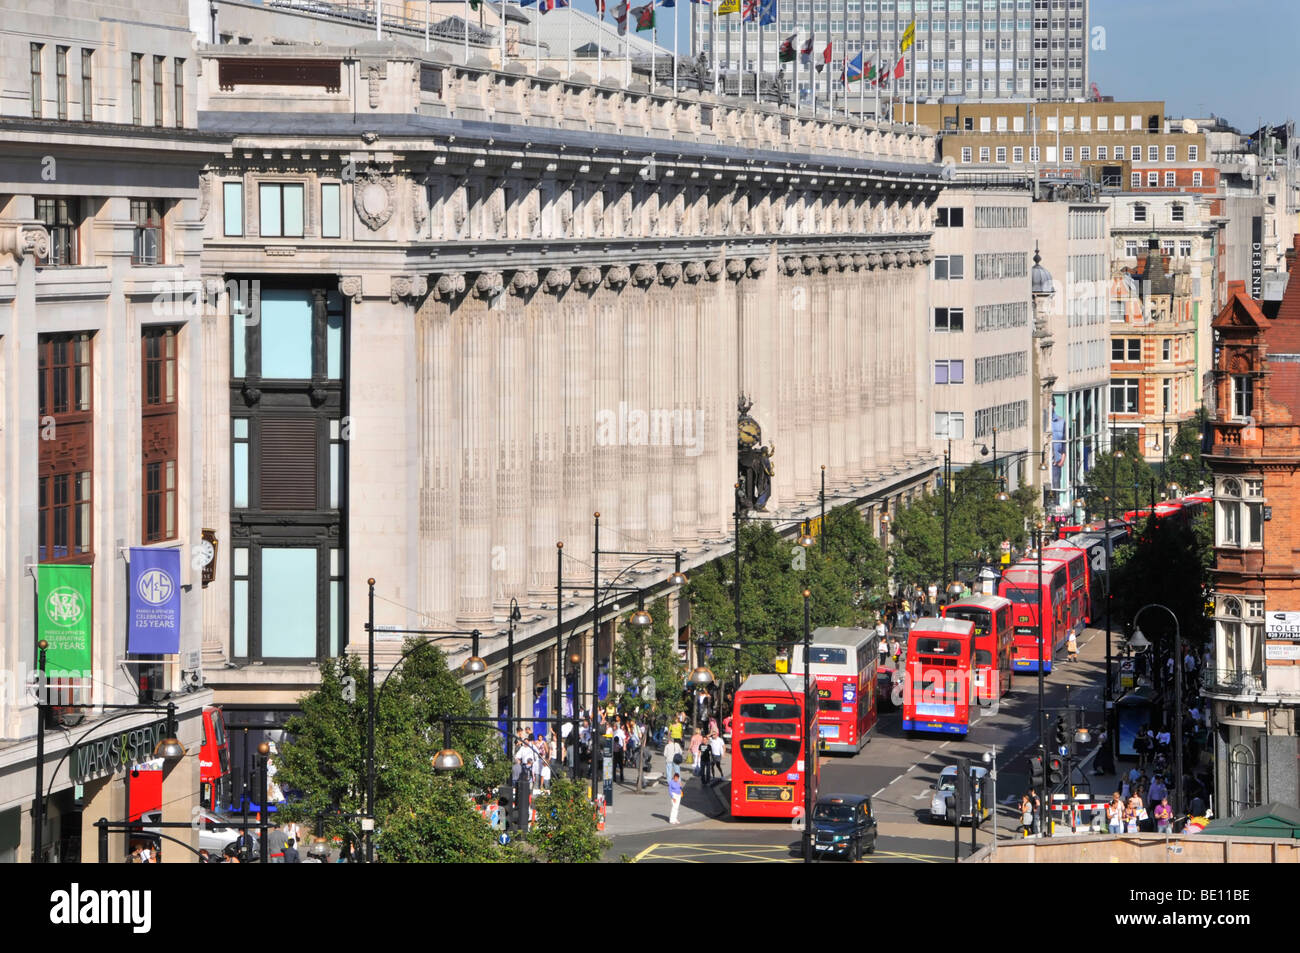 Oxford Street frontage of Selfridges department store with long queue of double decker red London buses - Stock Image